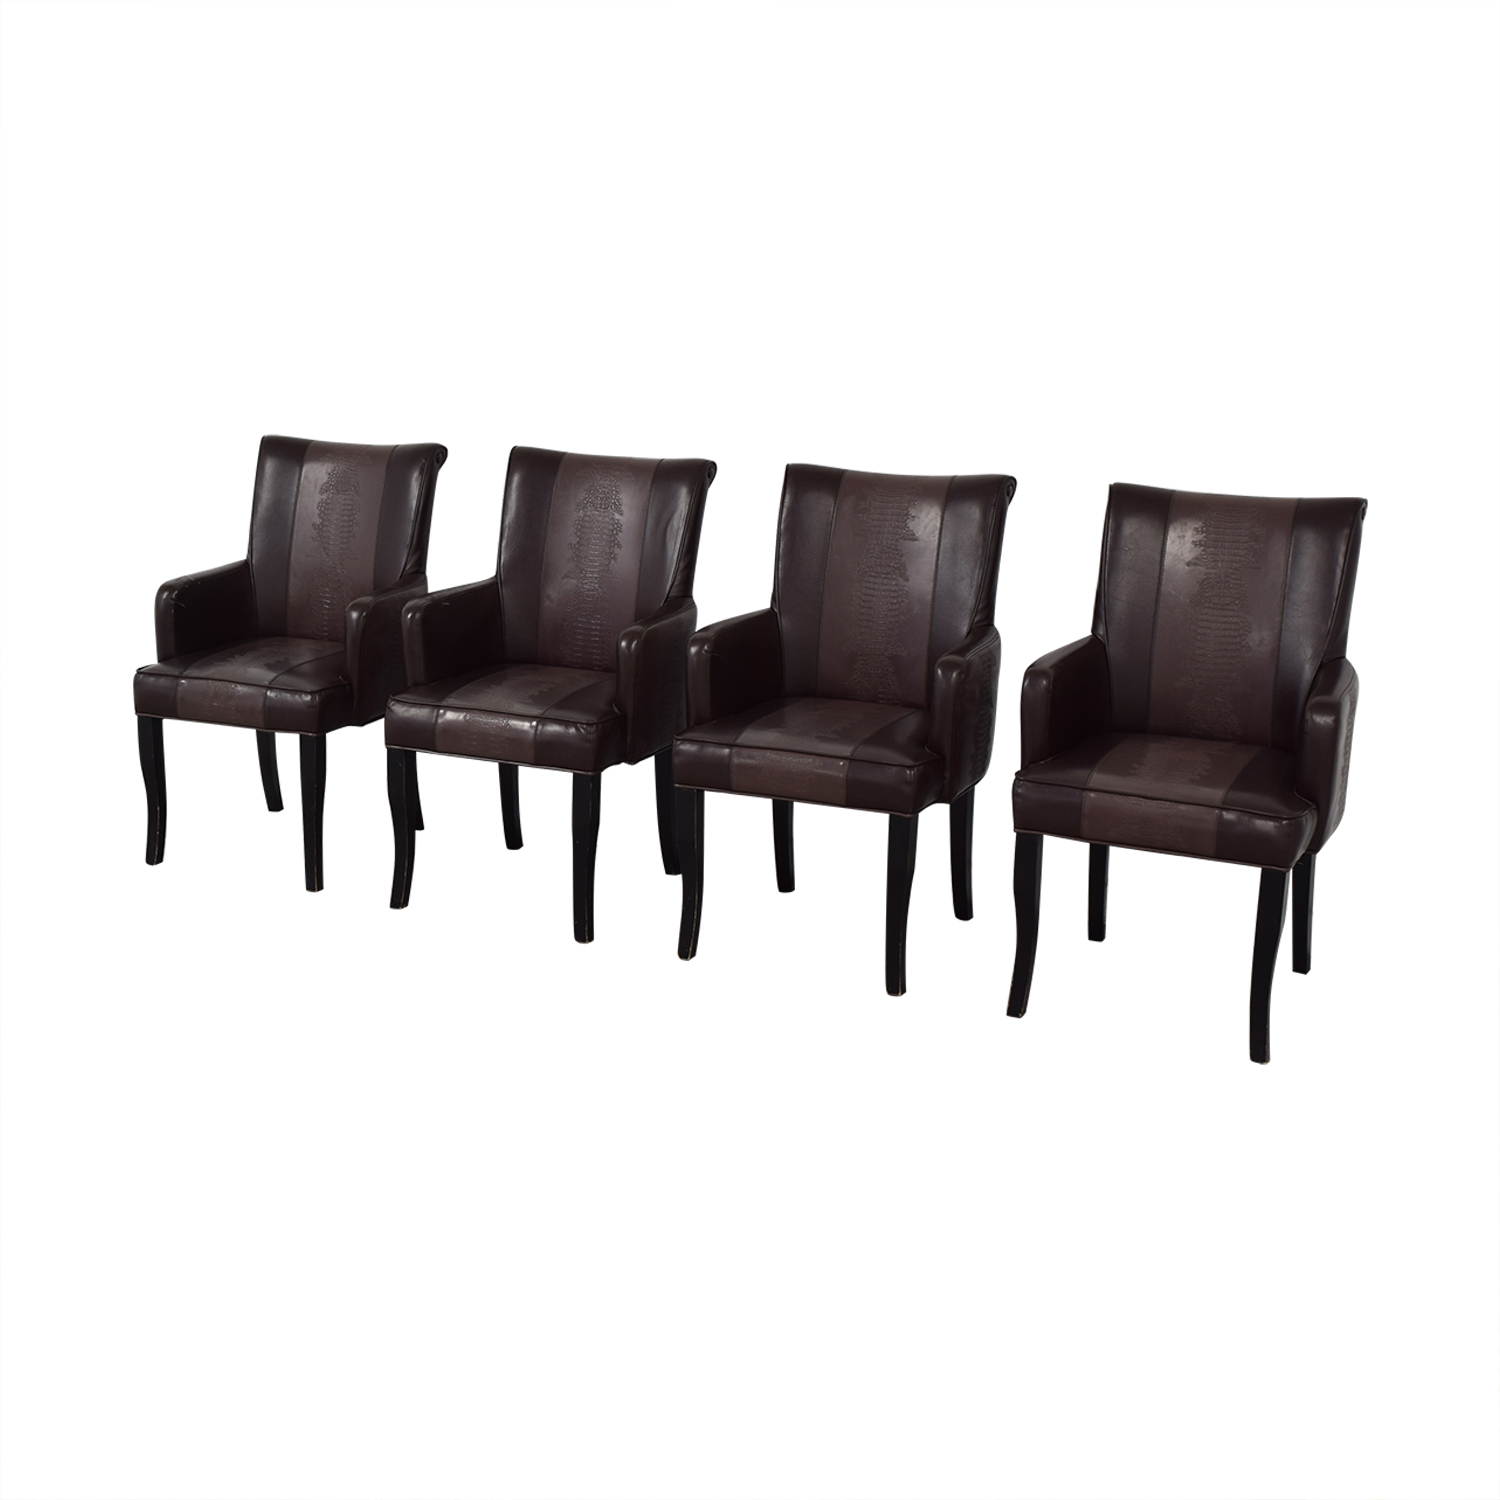 Bloomingdale's Brown Leather Dining Chairs sale